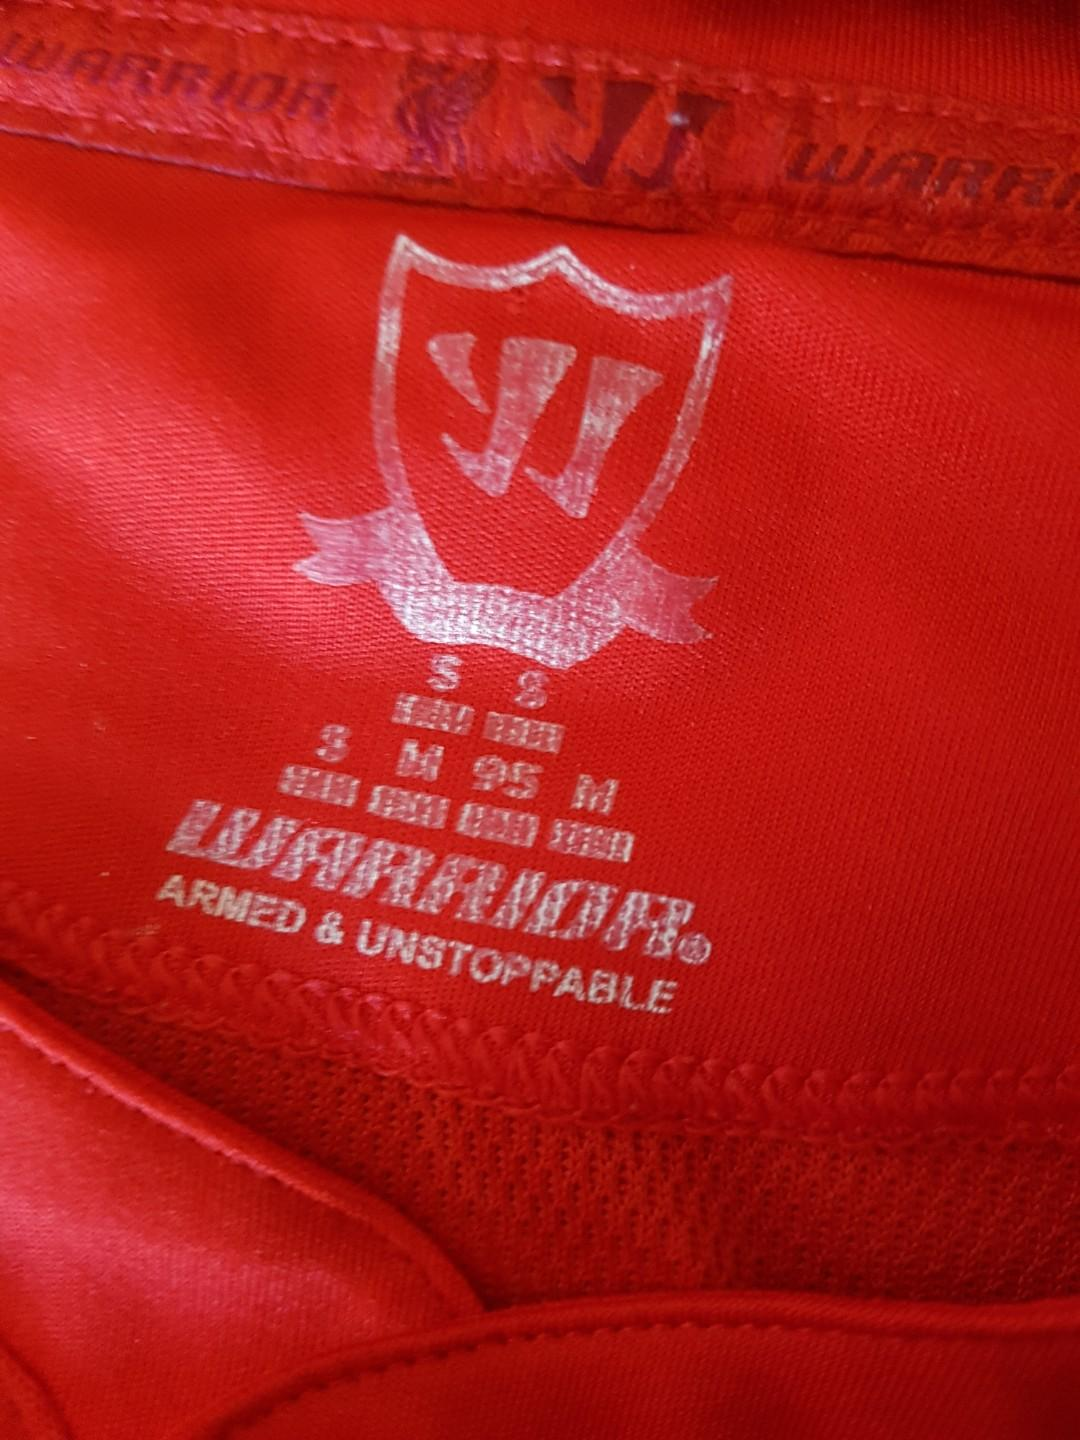 Liverpool Warrior jersey. Size S